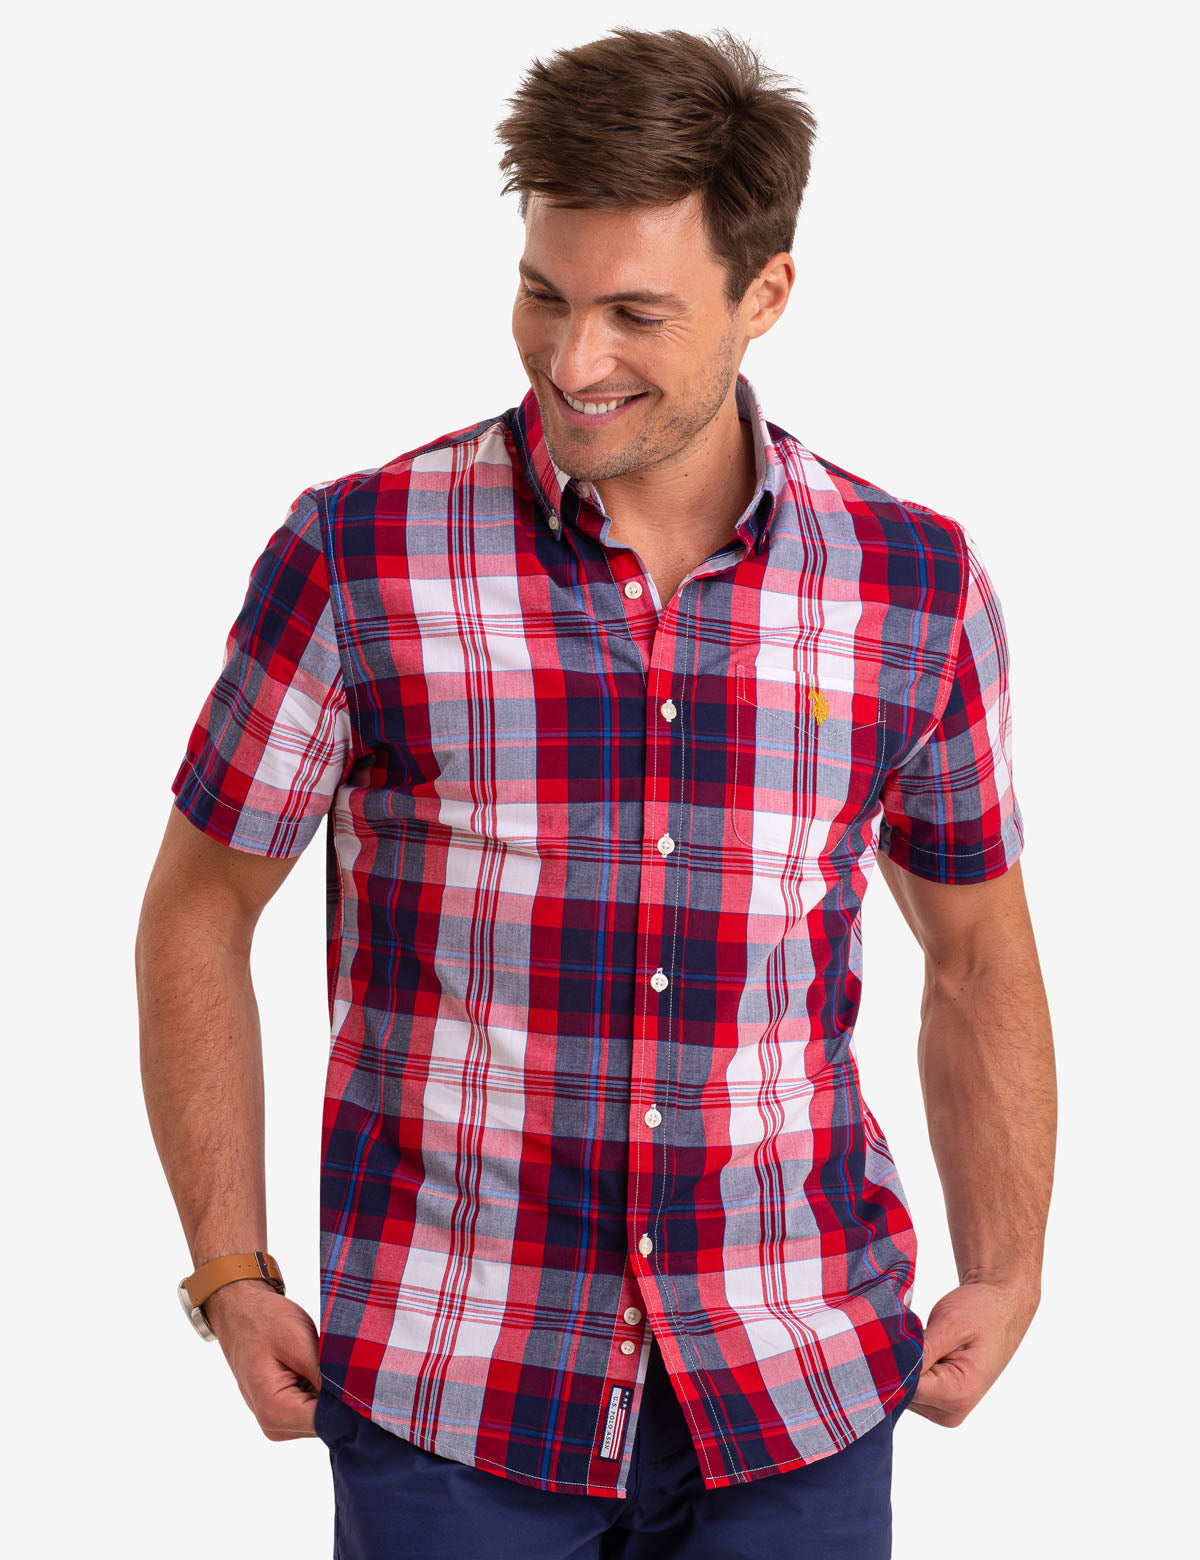 MADRAS PLAID SHORT SLEEVE SHIRT - U.S. Polo Assn.